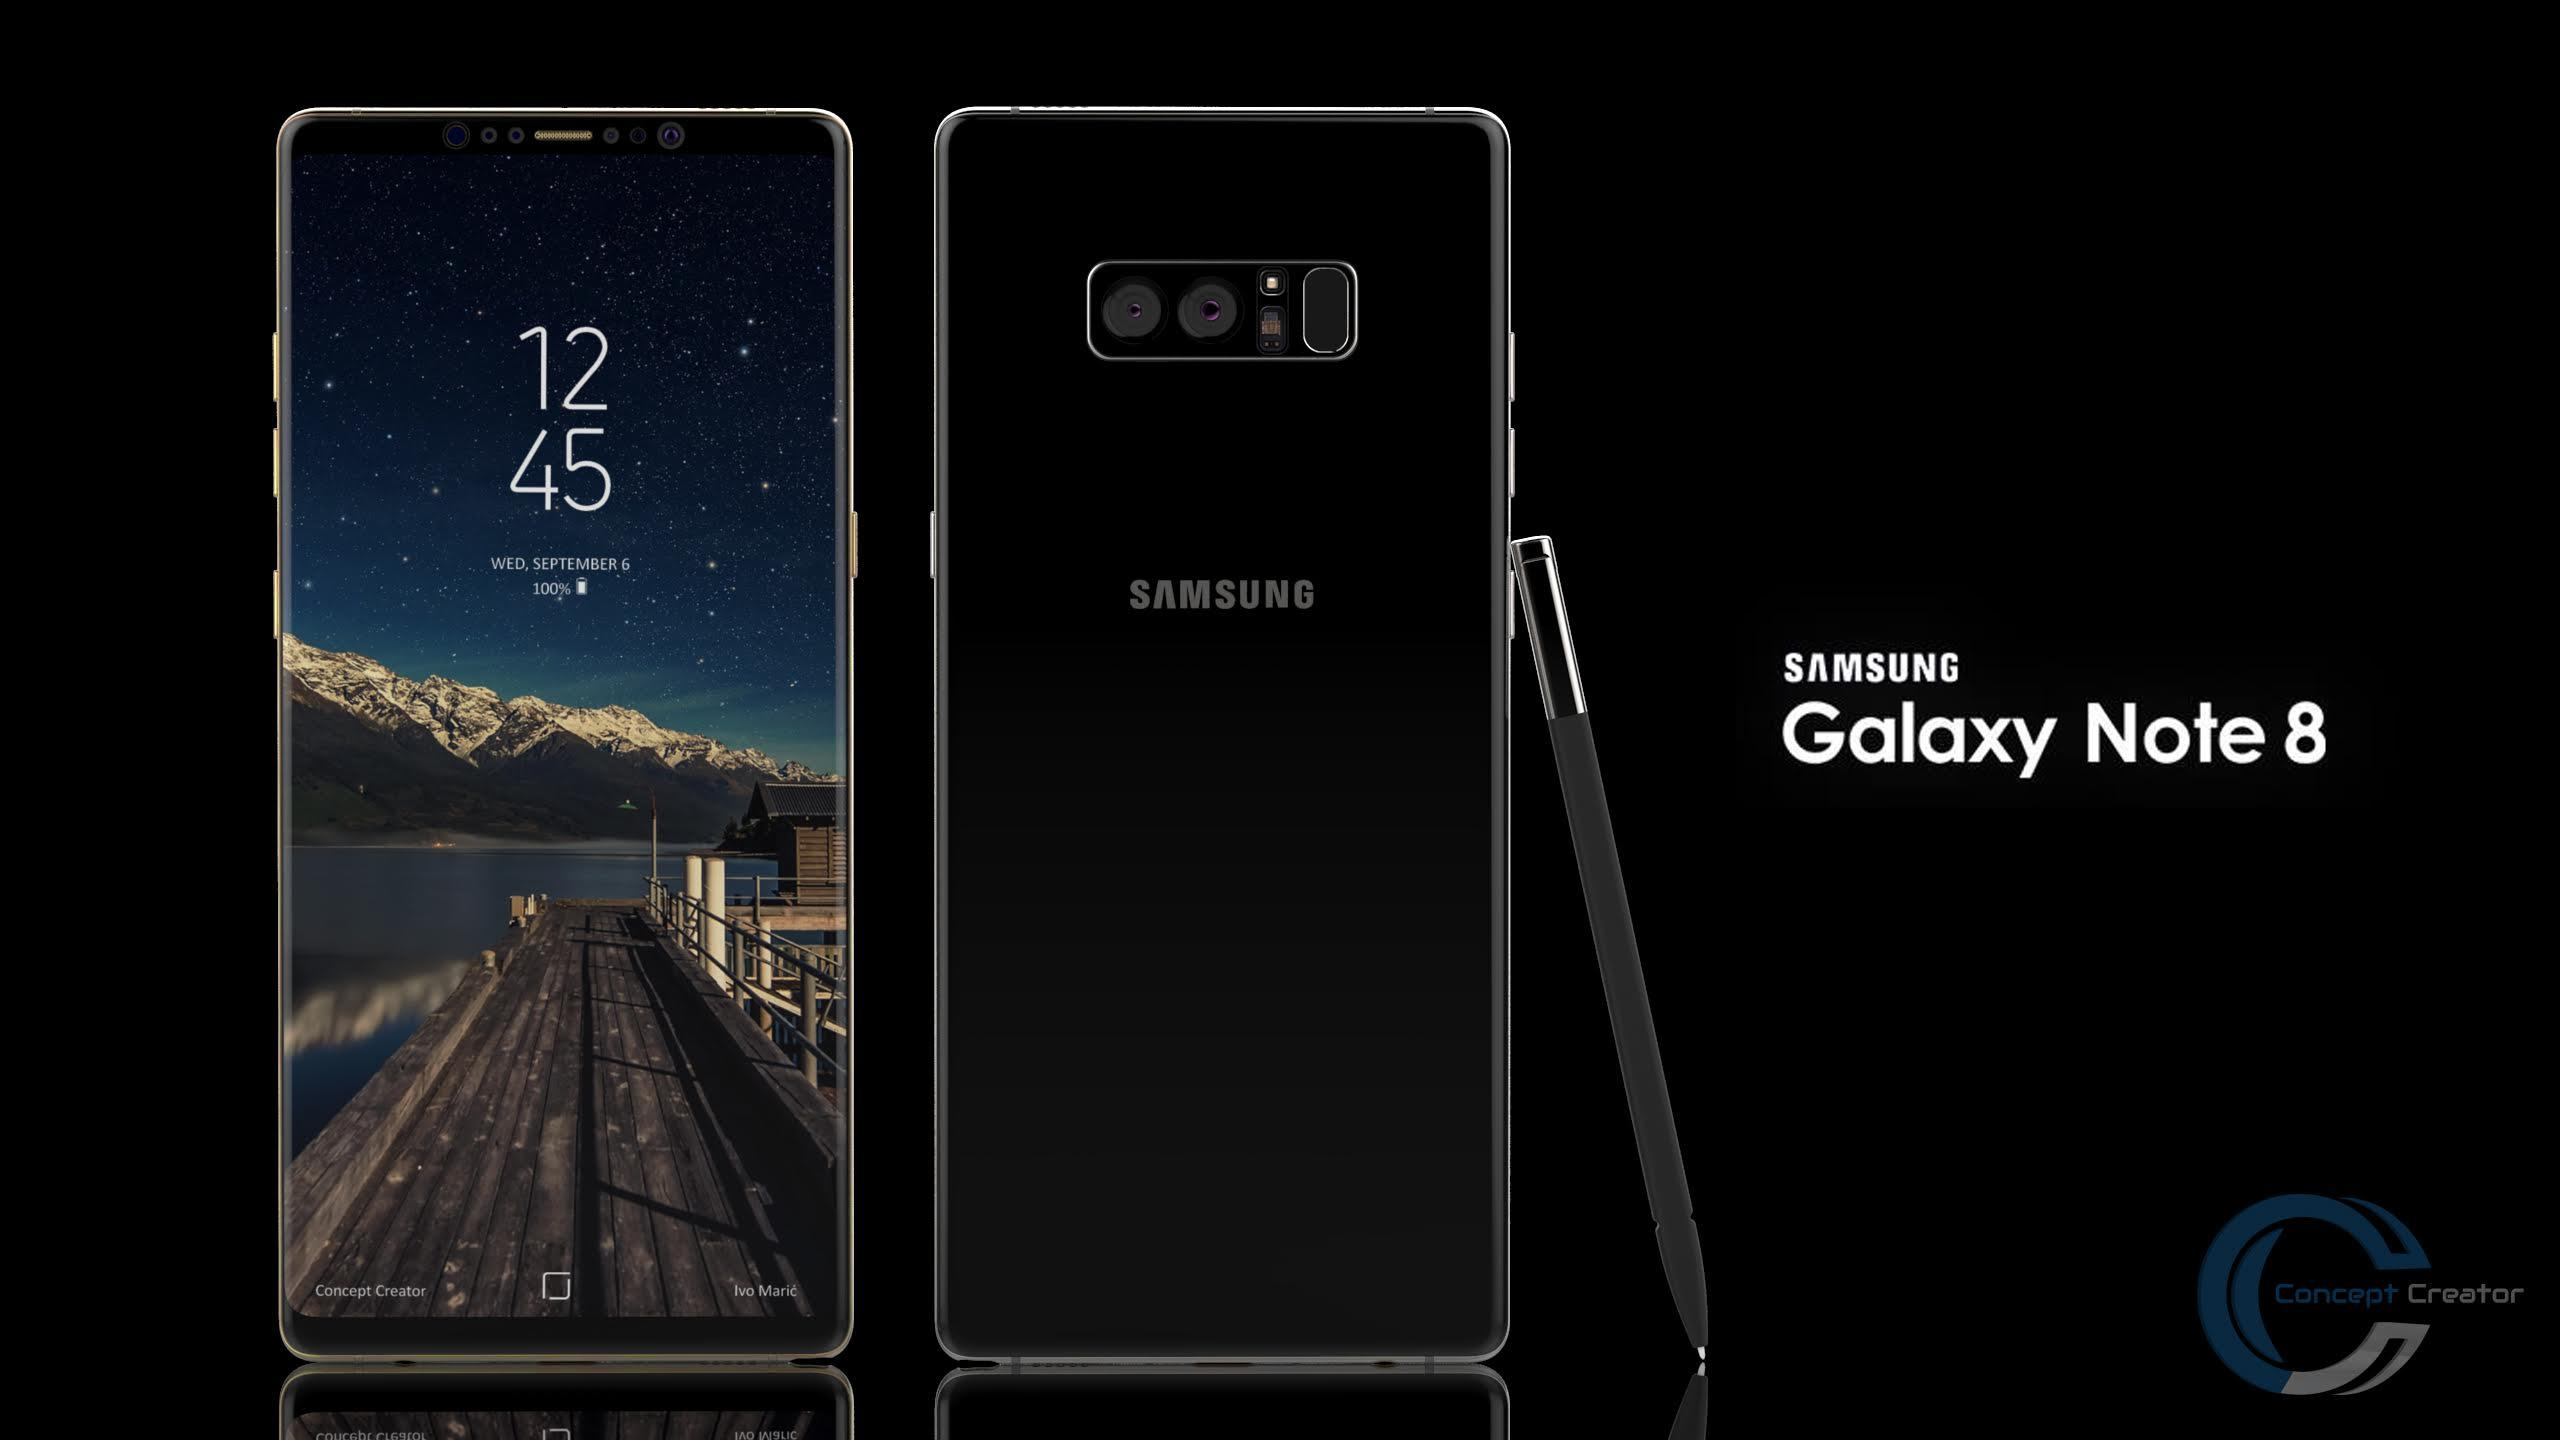 Free Download Samsung Confirms Galaxy Note 8 Is Massive 2560x1440 For Your Desktop Mobile Tablet Explore 24 Samsung Galaxy Note 8 Hd Wallpapers Samsung Galaxy Note 8 Wallpapers Samsung